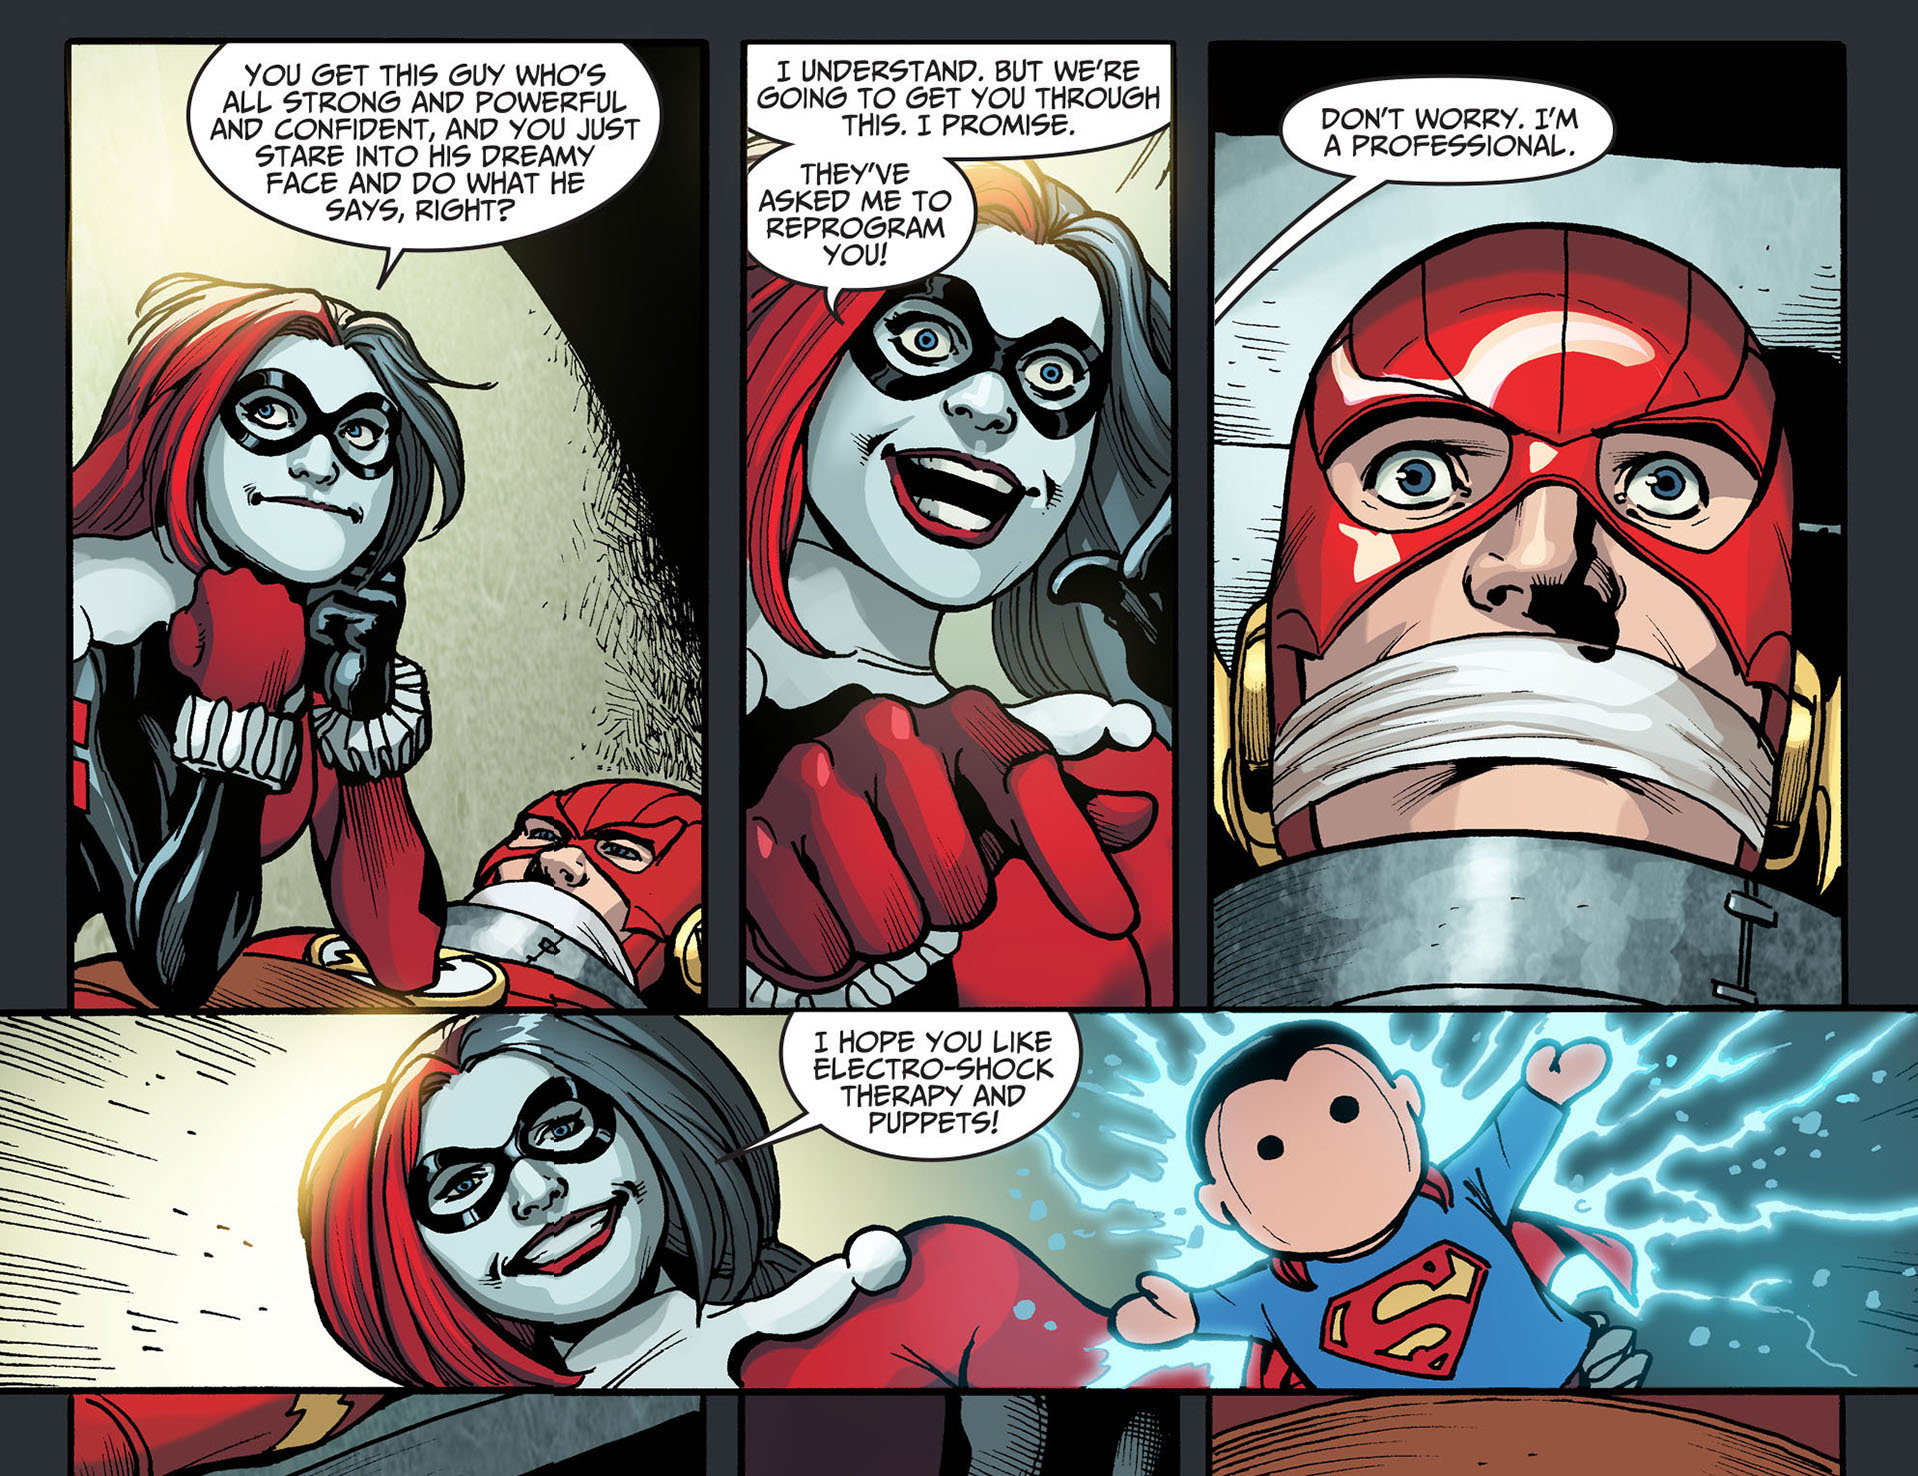 harley quinn tortures the flash 2